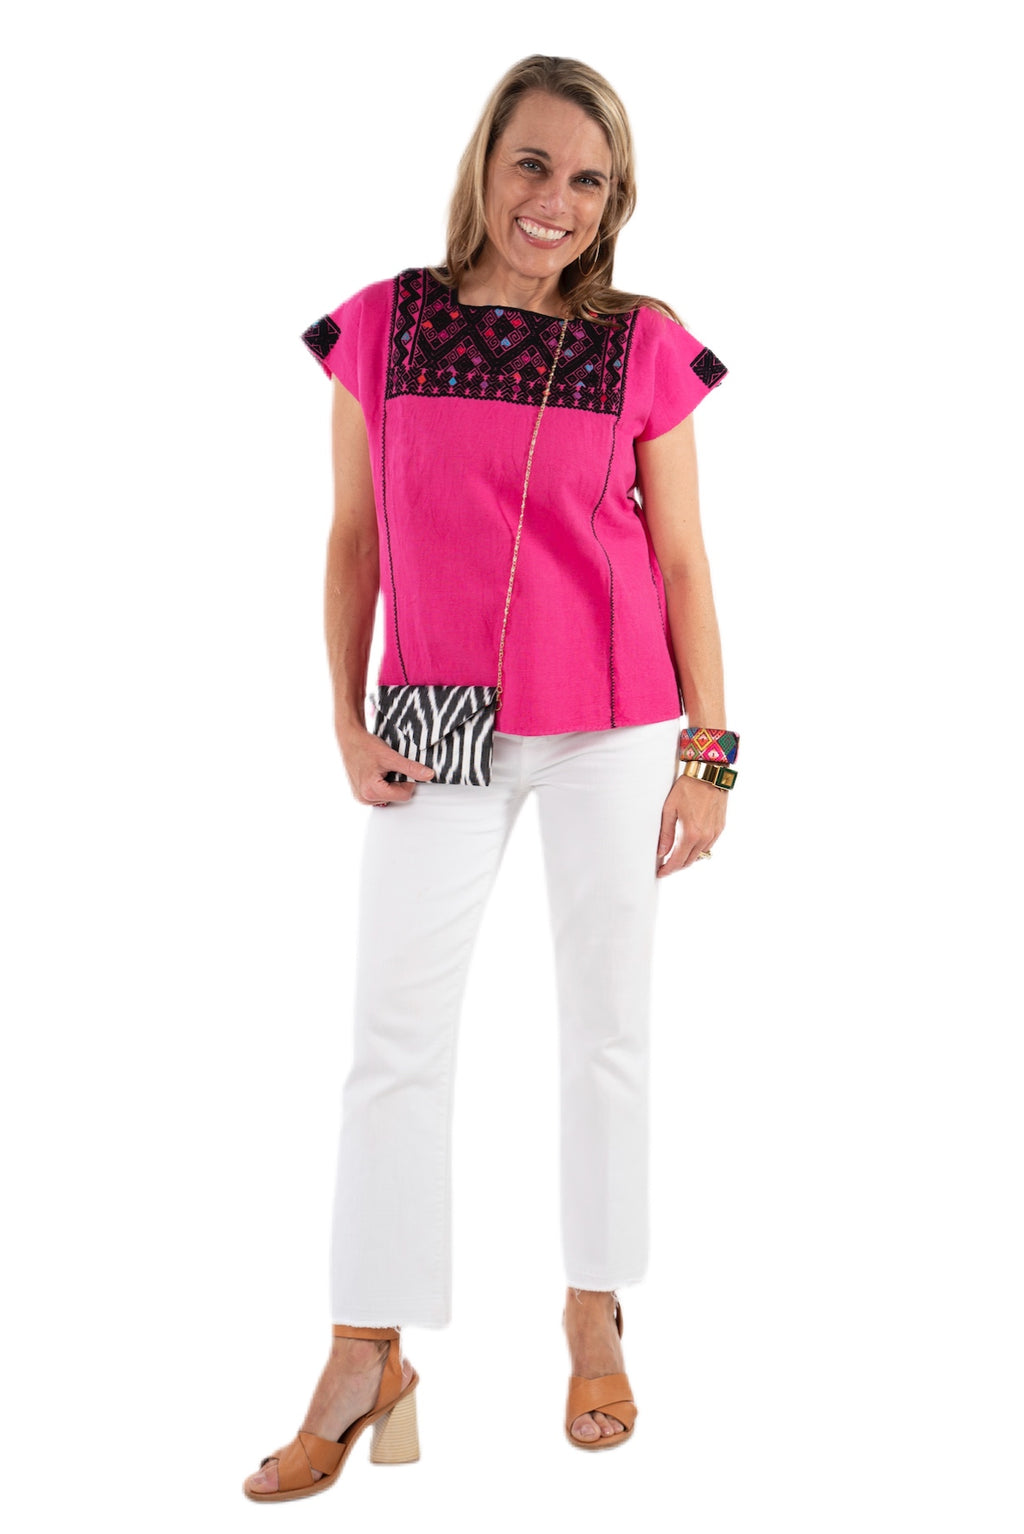 San Andres Mexican Blouse - Hot Pink and Black